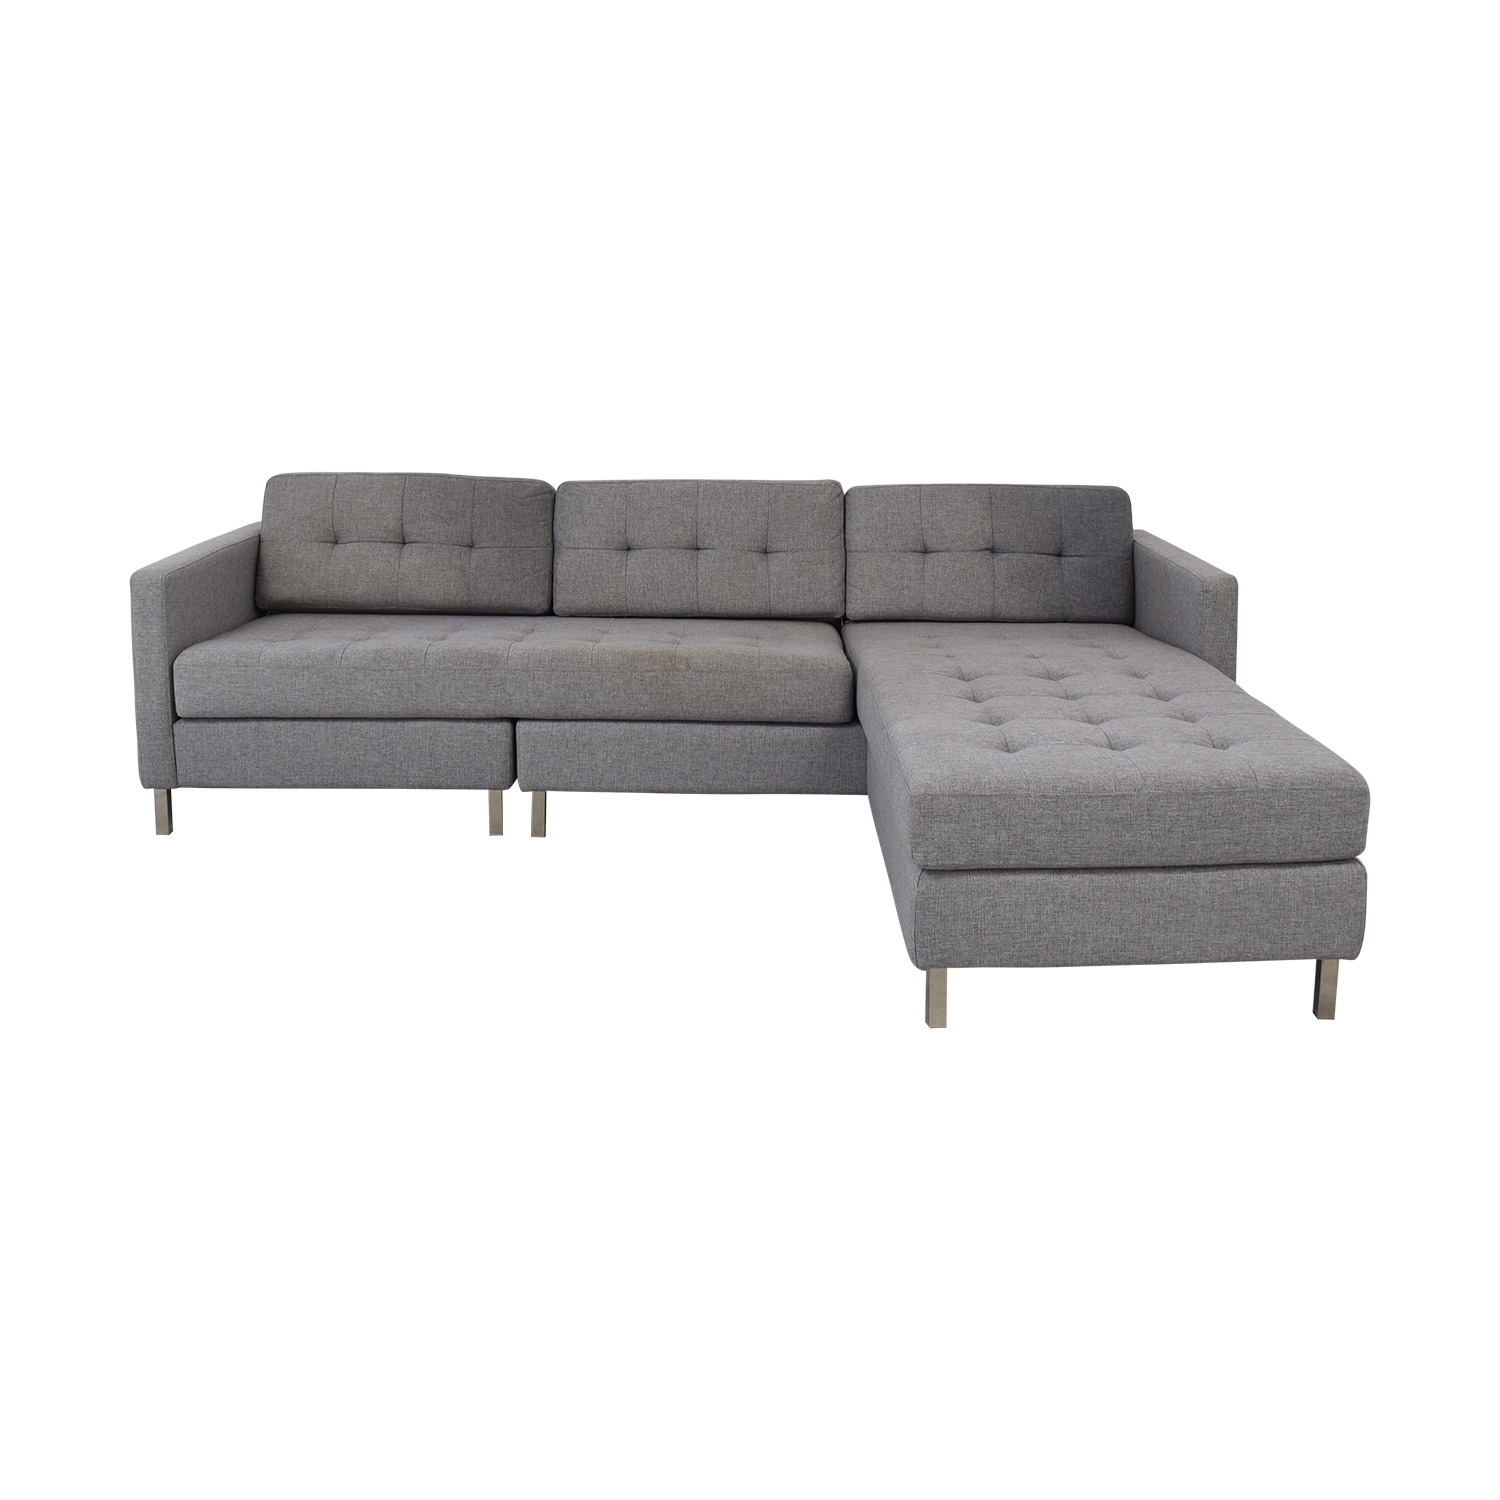 CB2 Ditto II Sectional Sofa sale